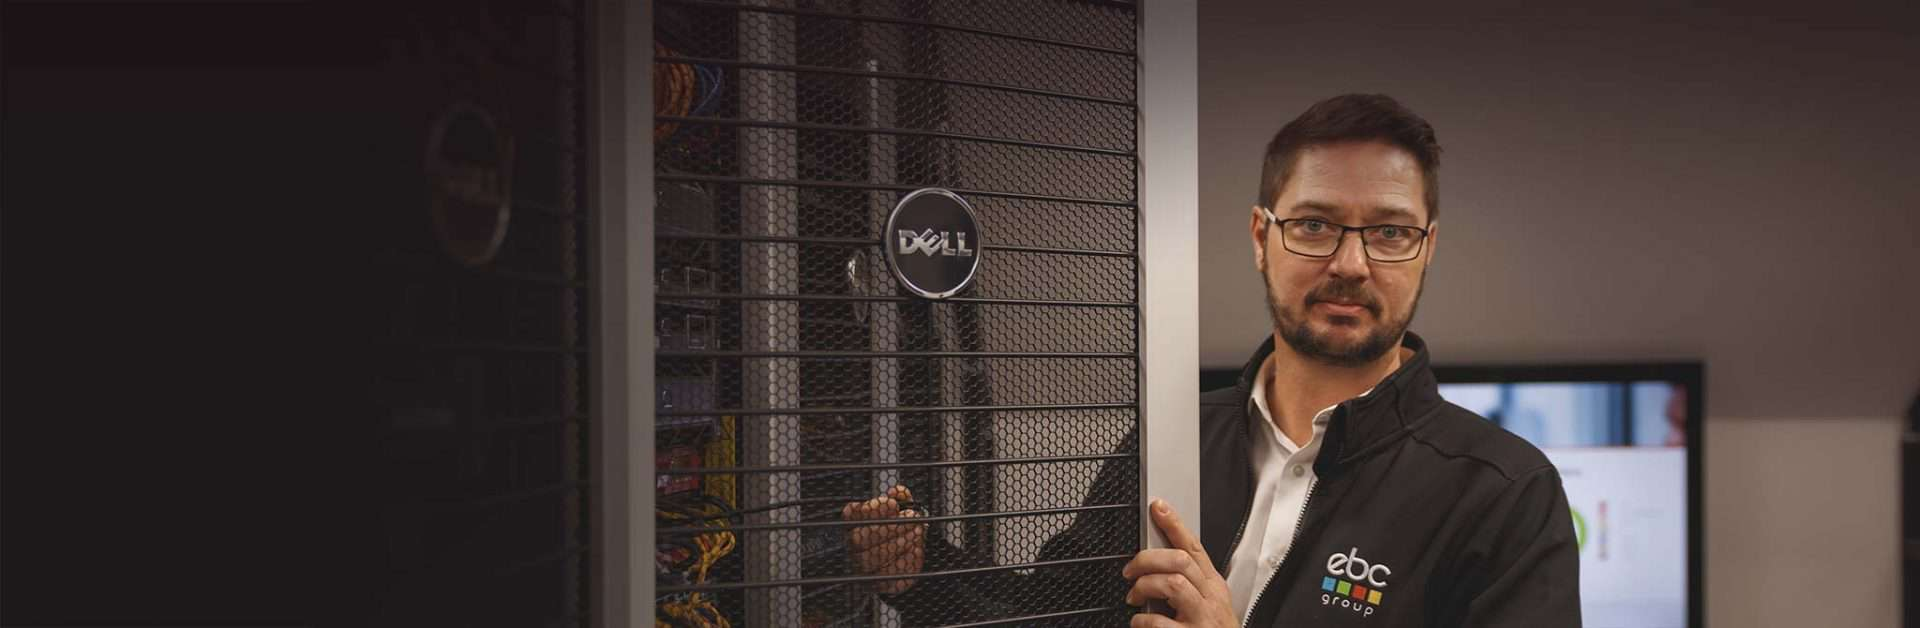 Man next to cloud server cage door